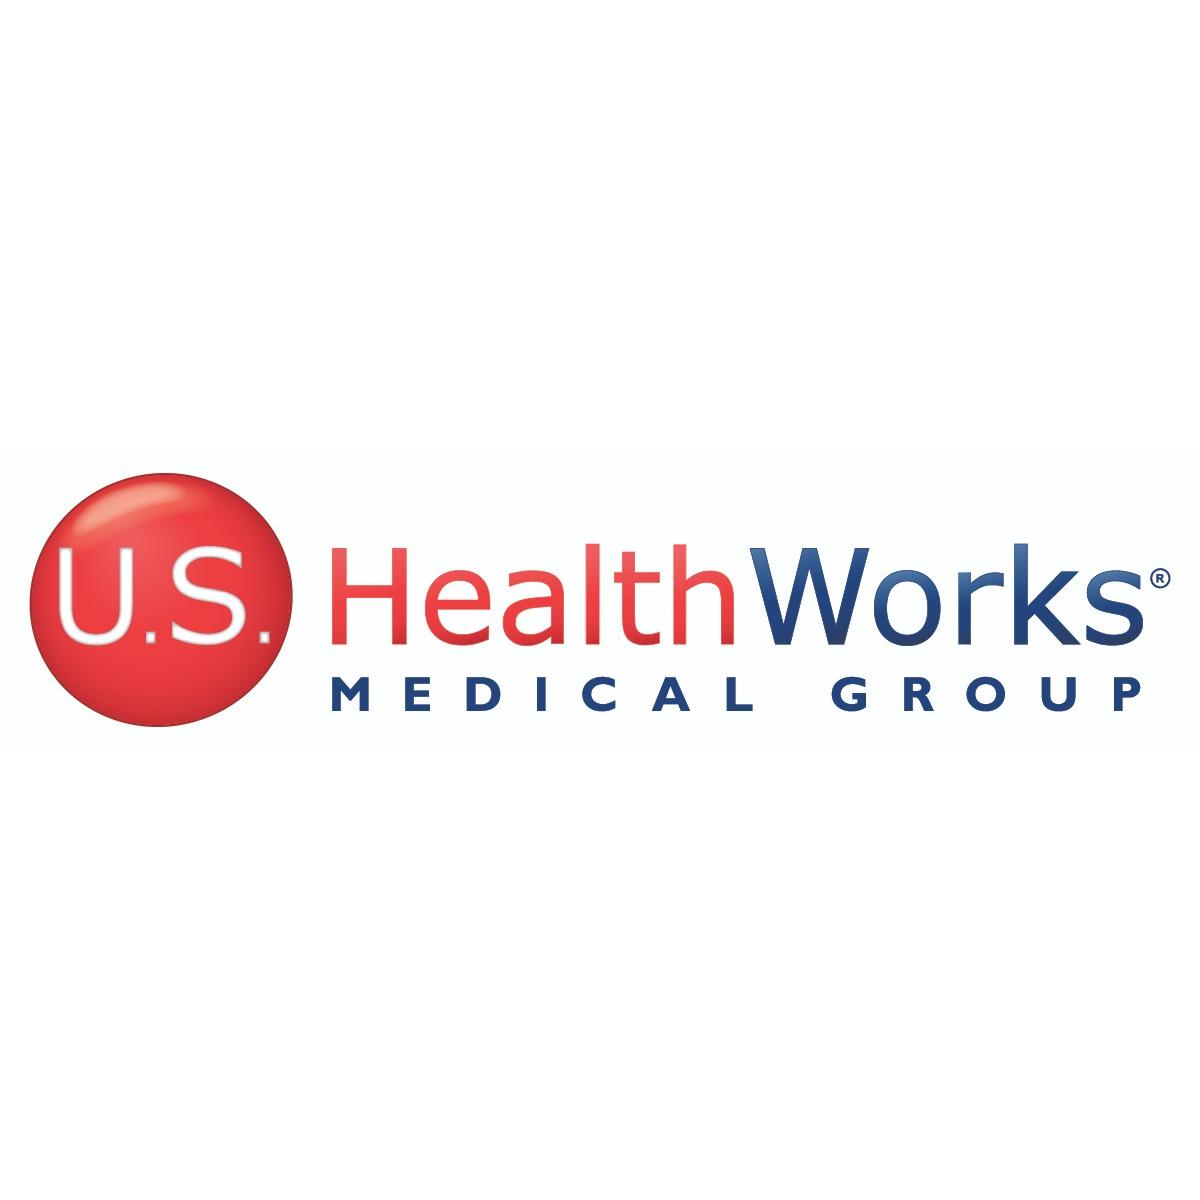 U.S. HealthWorks Urgent Care - Santa Ana, CA - Occupational Medicine